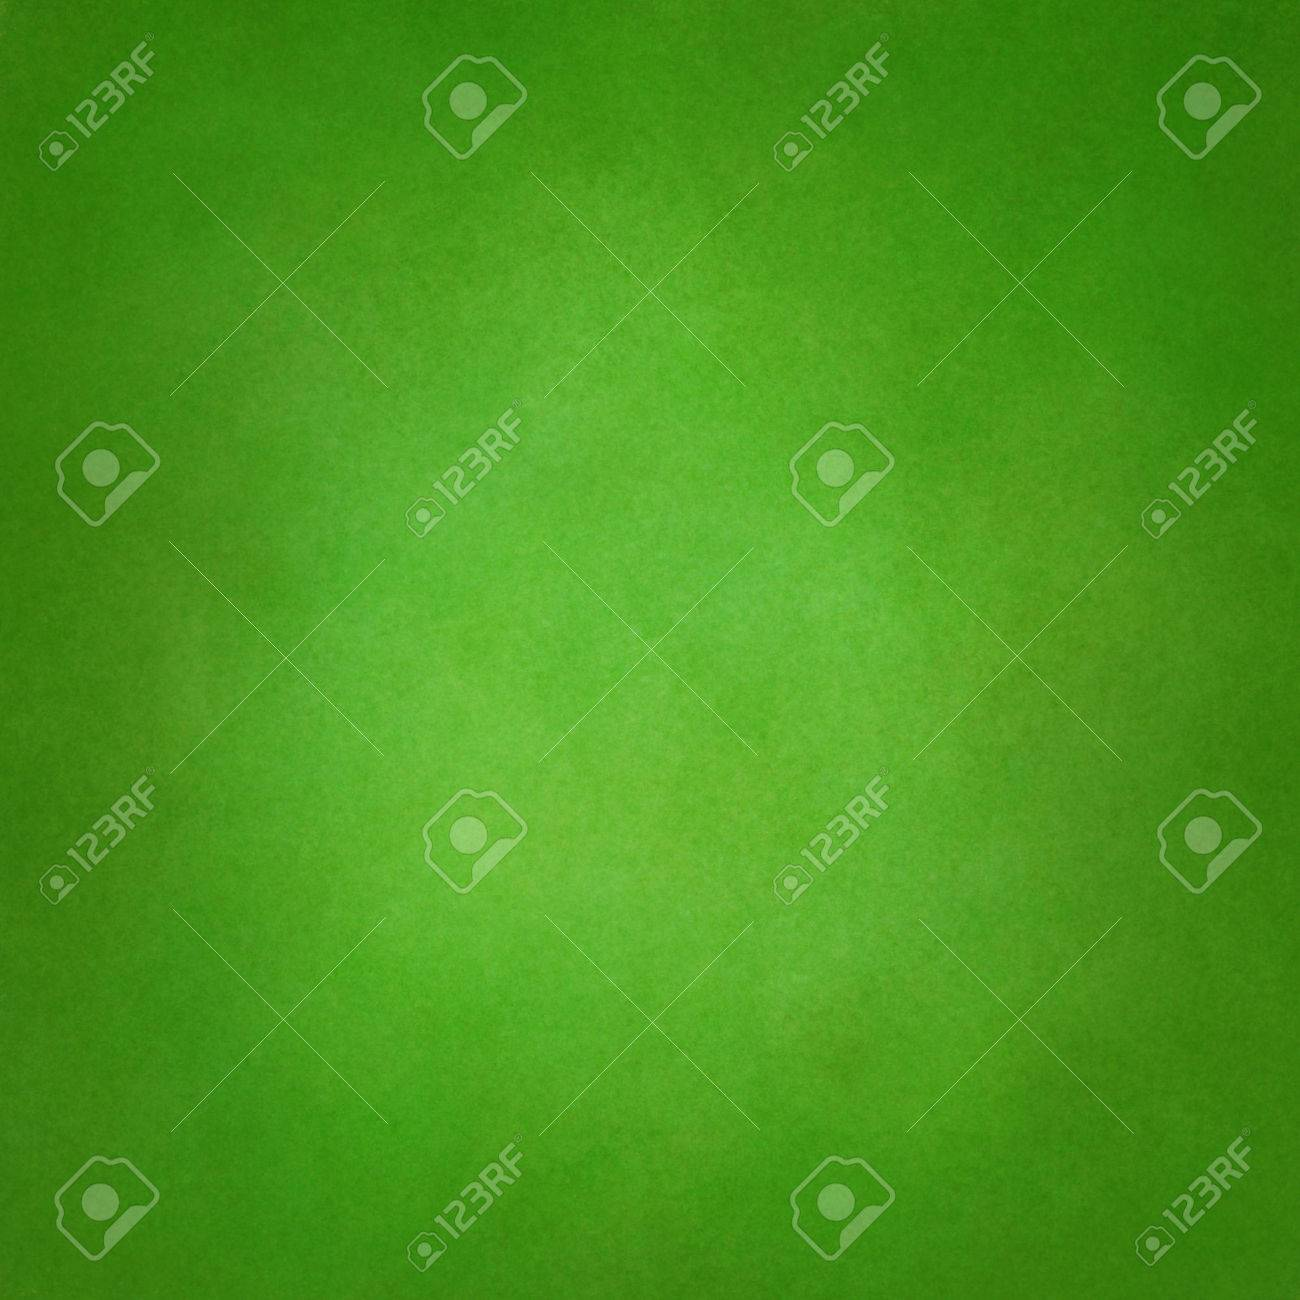 elegant green background with light center and light distressed vintage background texture - 62048534